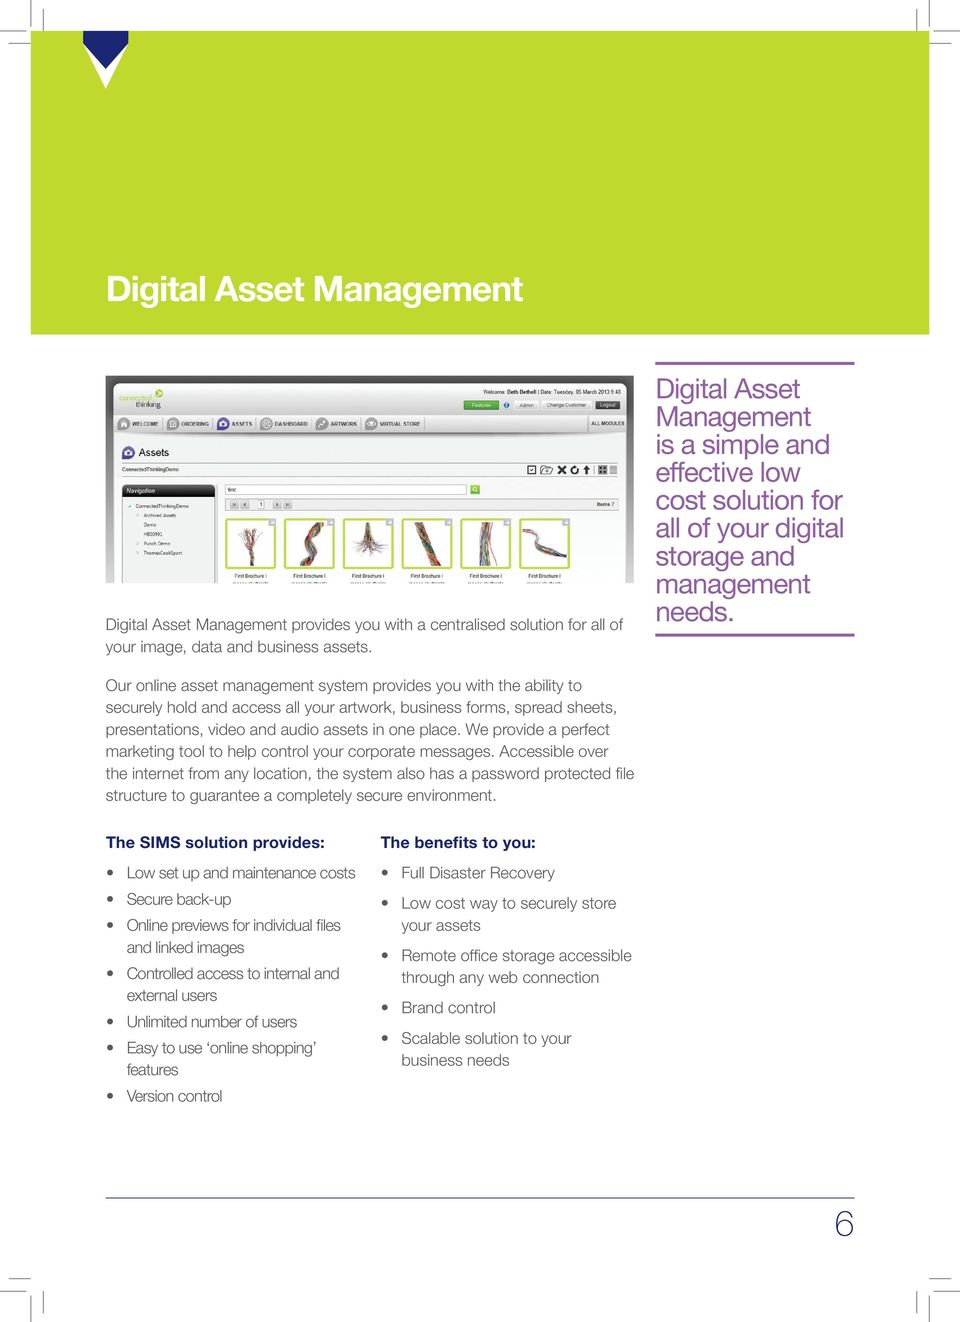 Our online asset management system provides you with the ability to securely hold and access all your artwork, business forms, spread sheets, presentations, video and audio assets in one place.